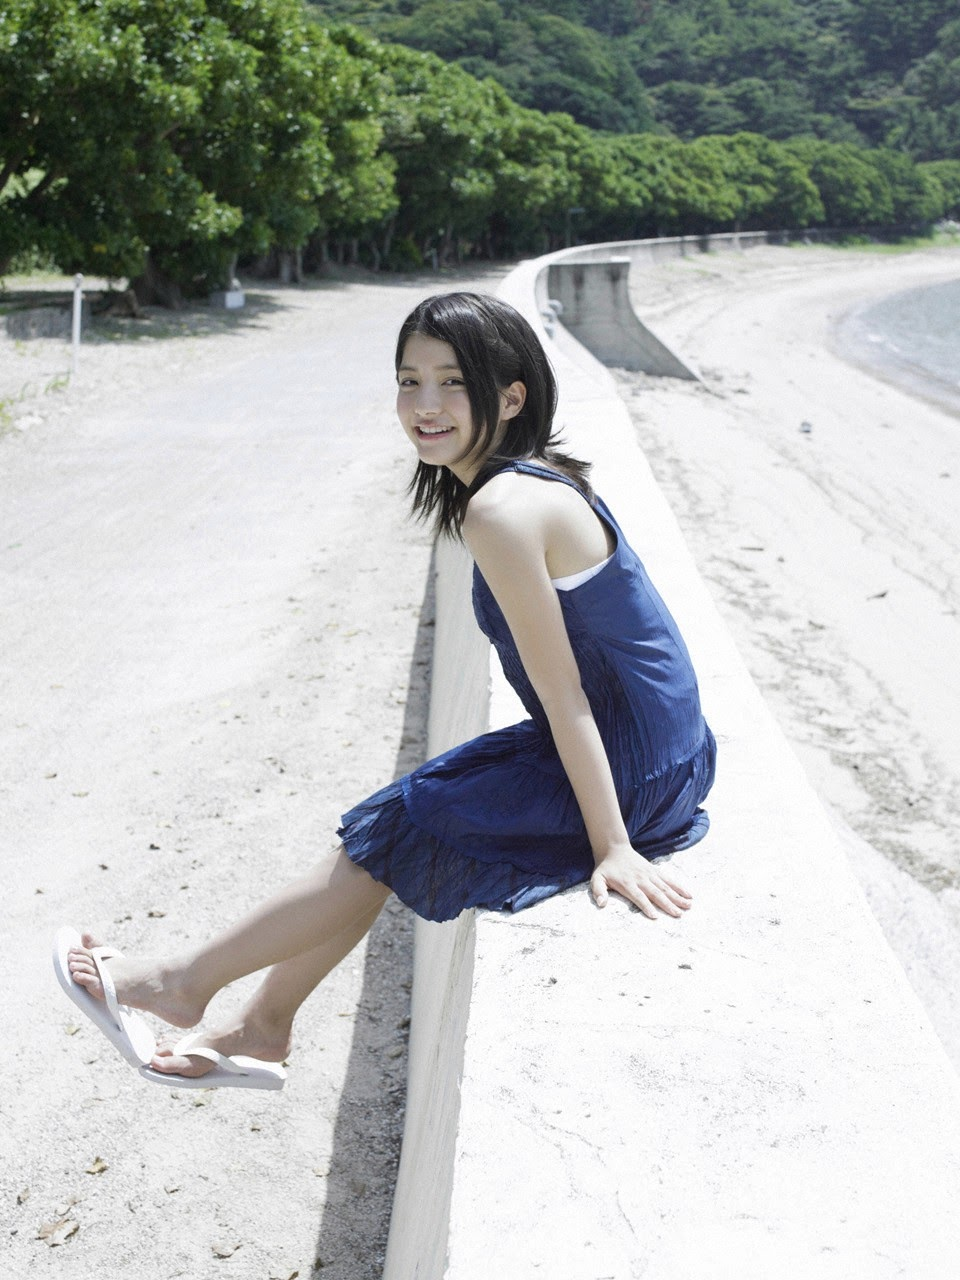 Umi chans smile explodes on some southern island158